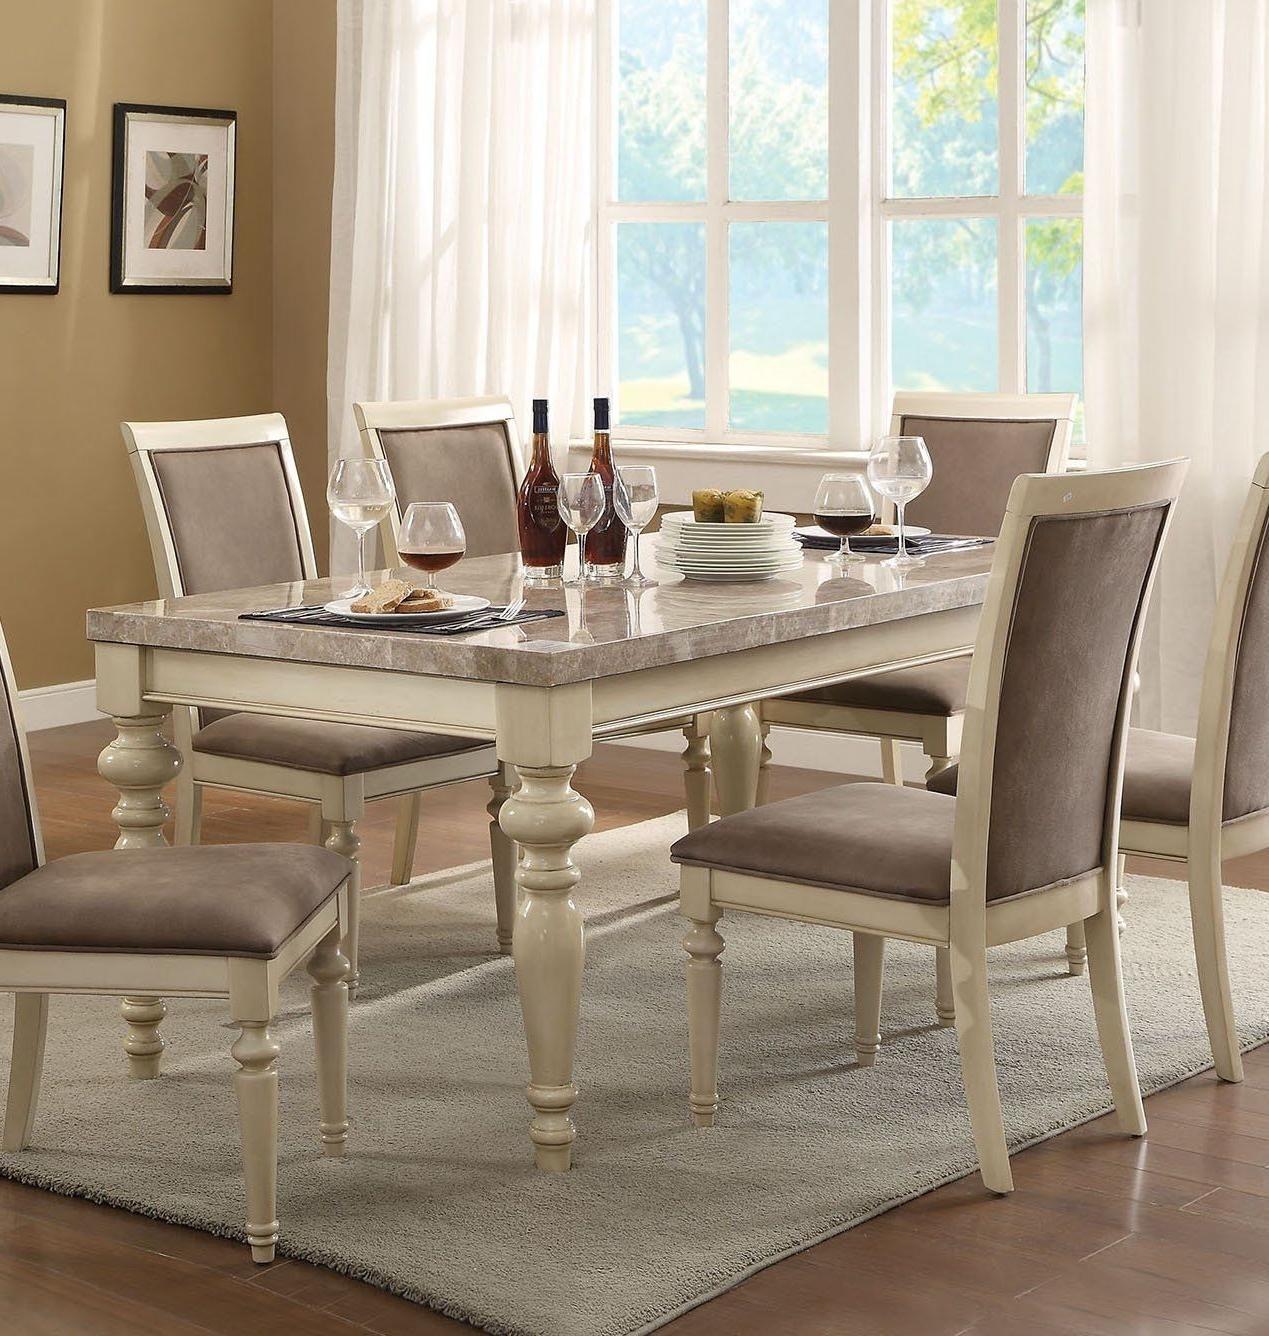 Most Current Caira 9 Piece Extension Dining Sets With Diamond Back Chairs For Acme 71705 Ryder Antique White Marble Top Dining Table (Gallery 9 of 25)